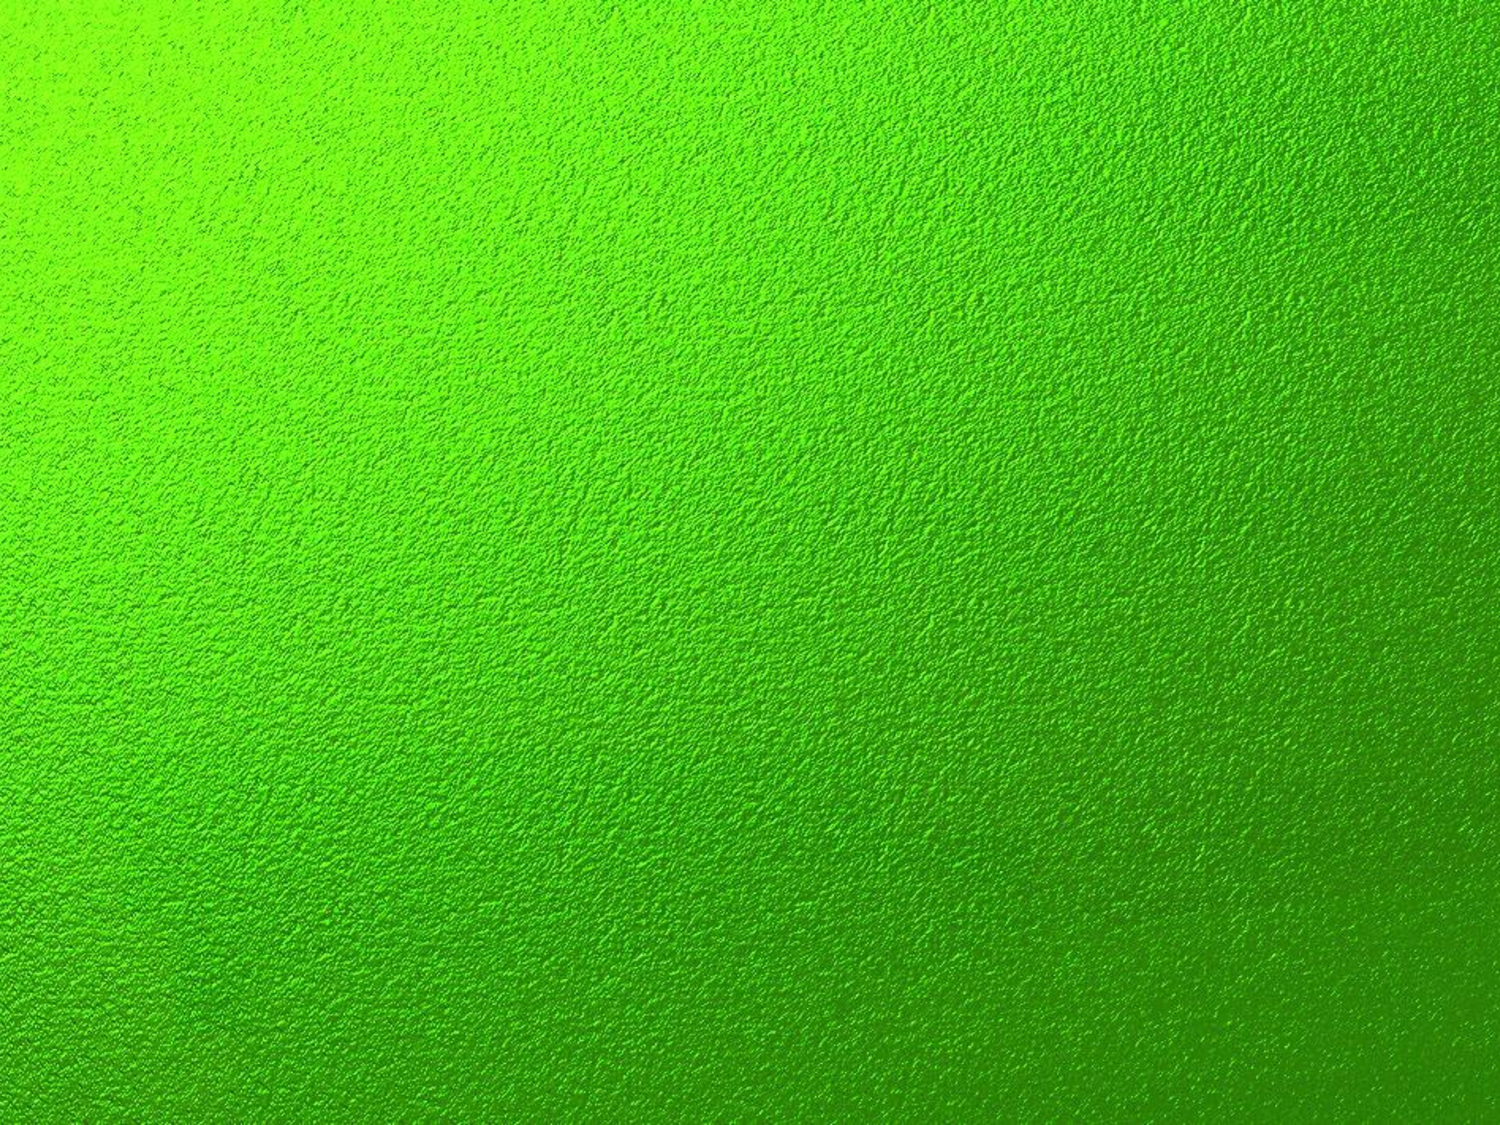 lime green backgrounds - photo #30